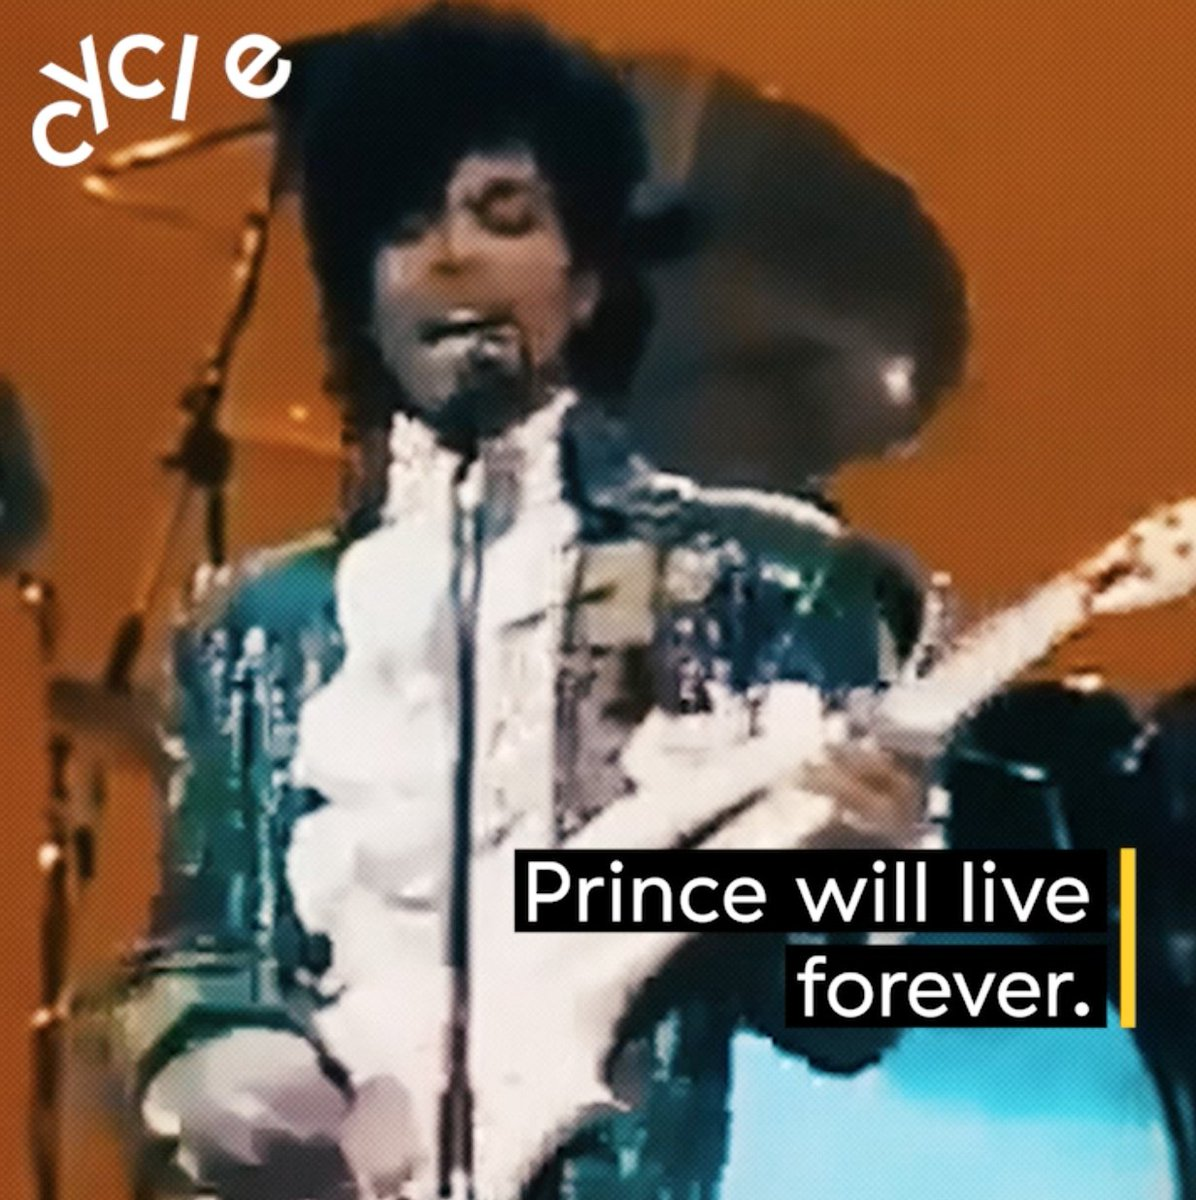 Prince died one year ago today. His music, style, and creativity will...